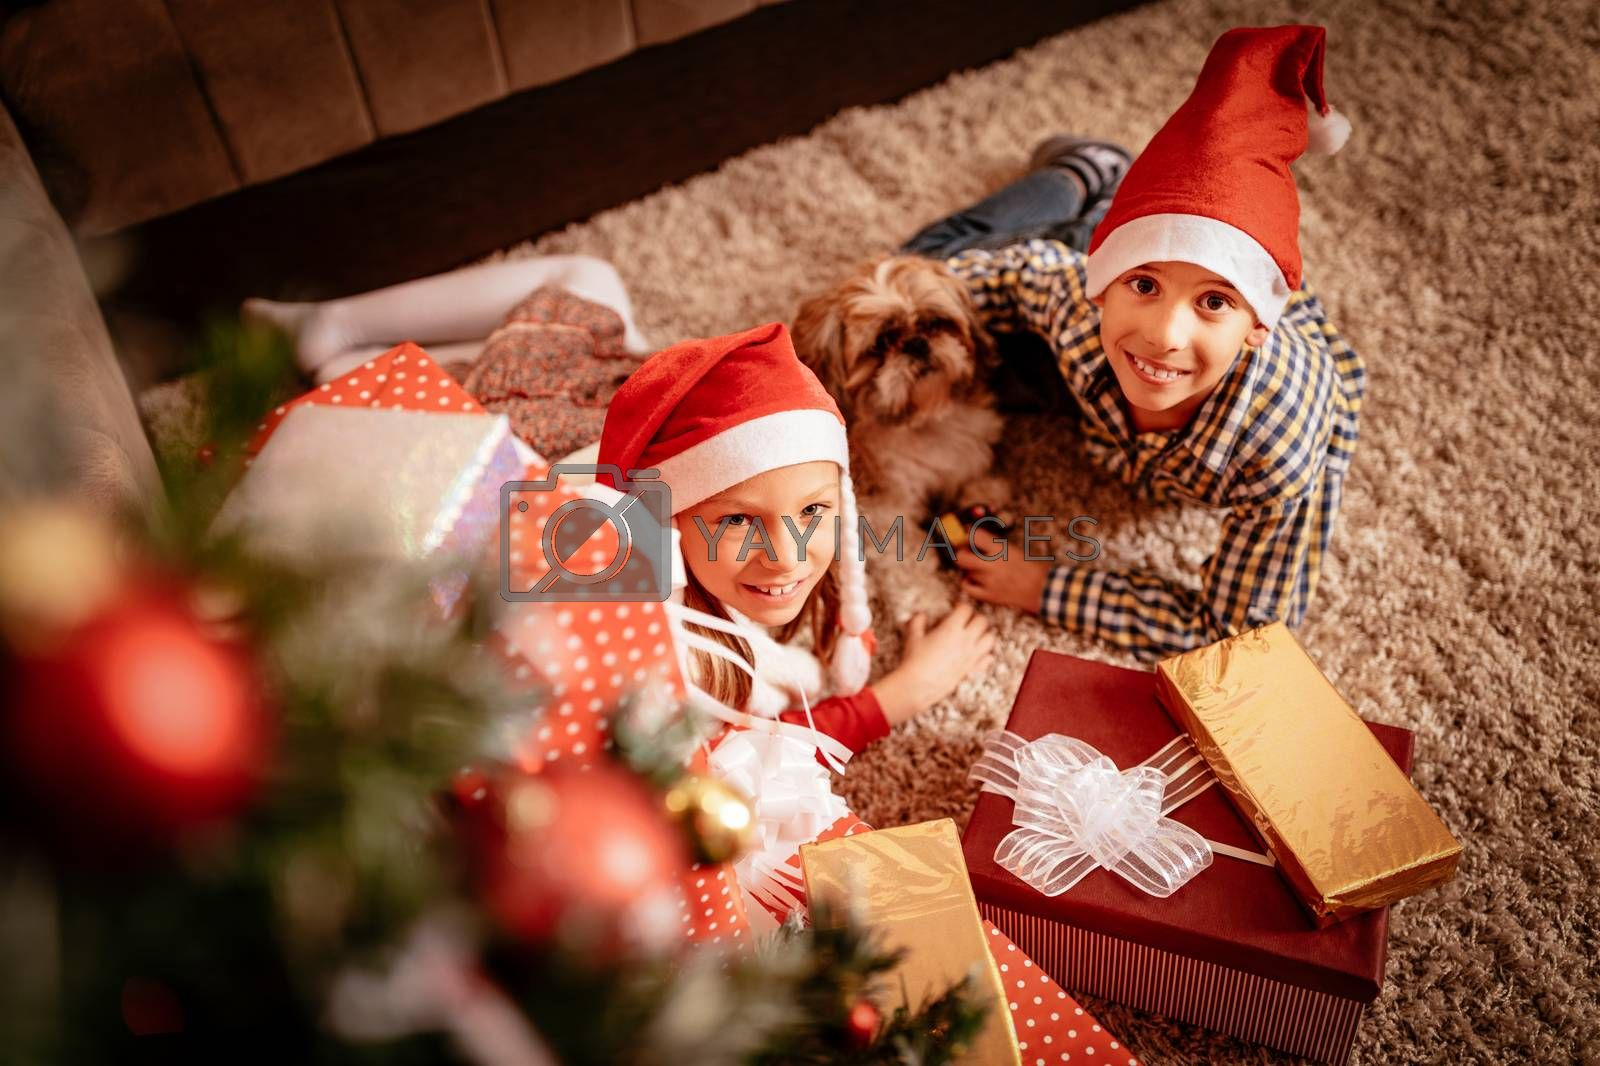 Top view of cute smiling girl, boy and their little dog with many presents in a Christmas time at the home. Looking at camera. Top view.